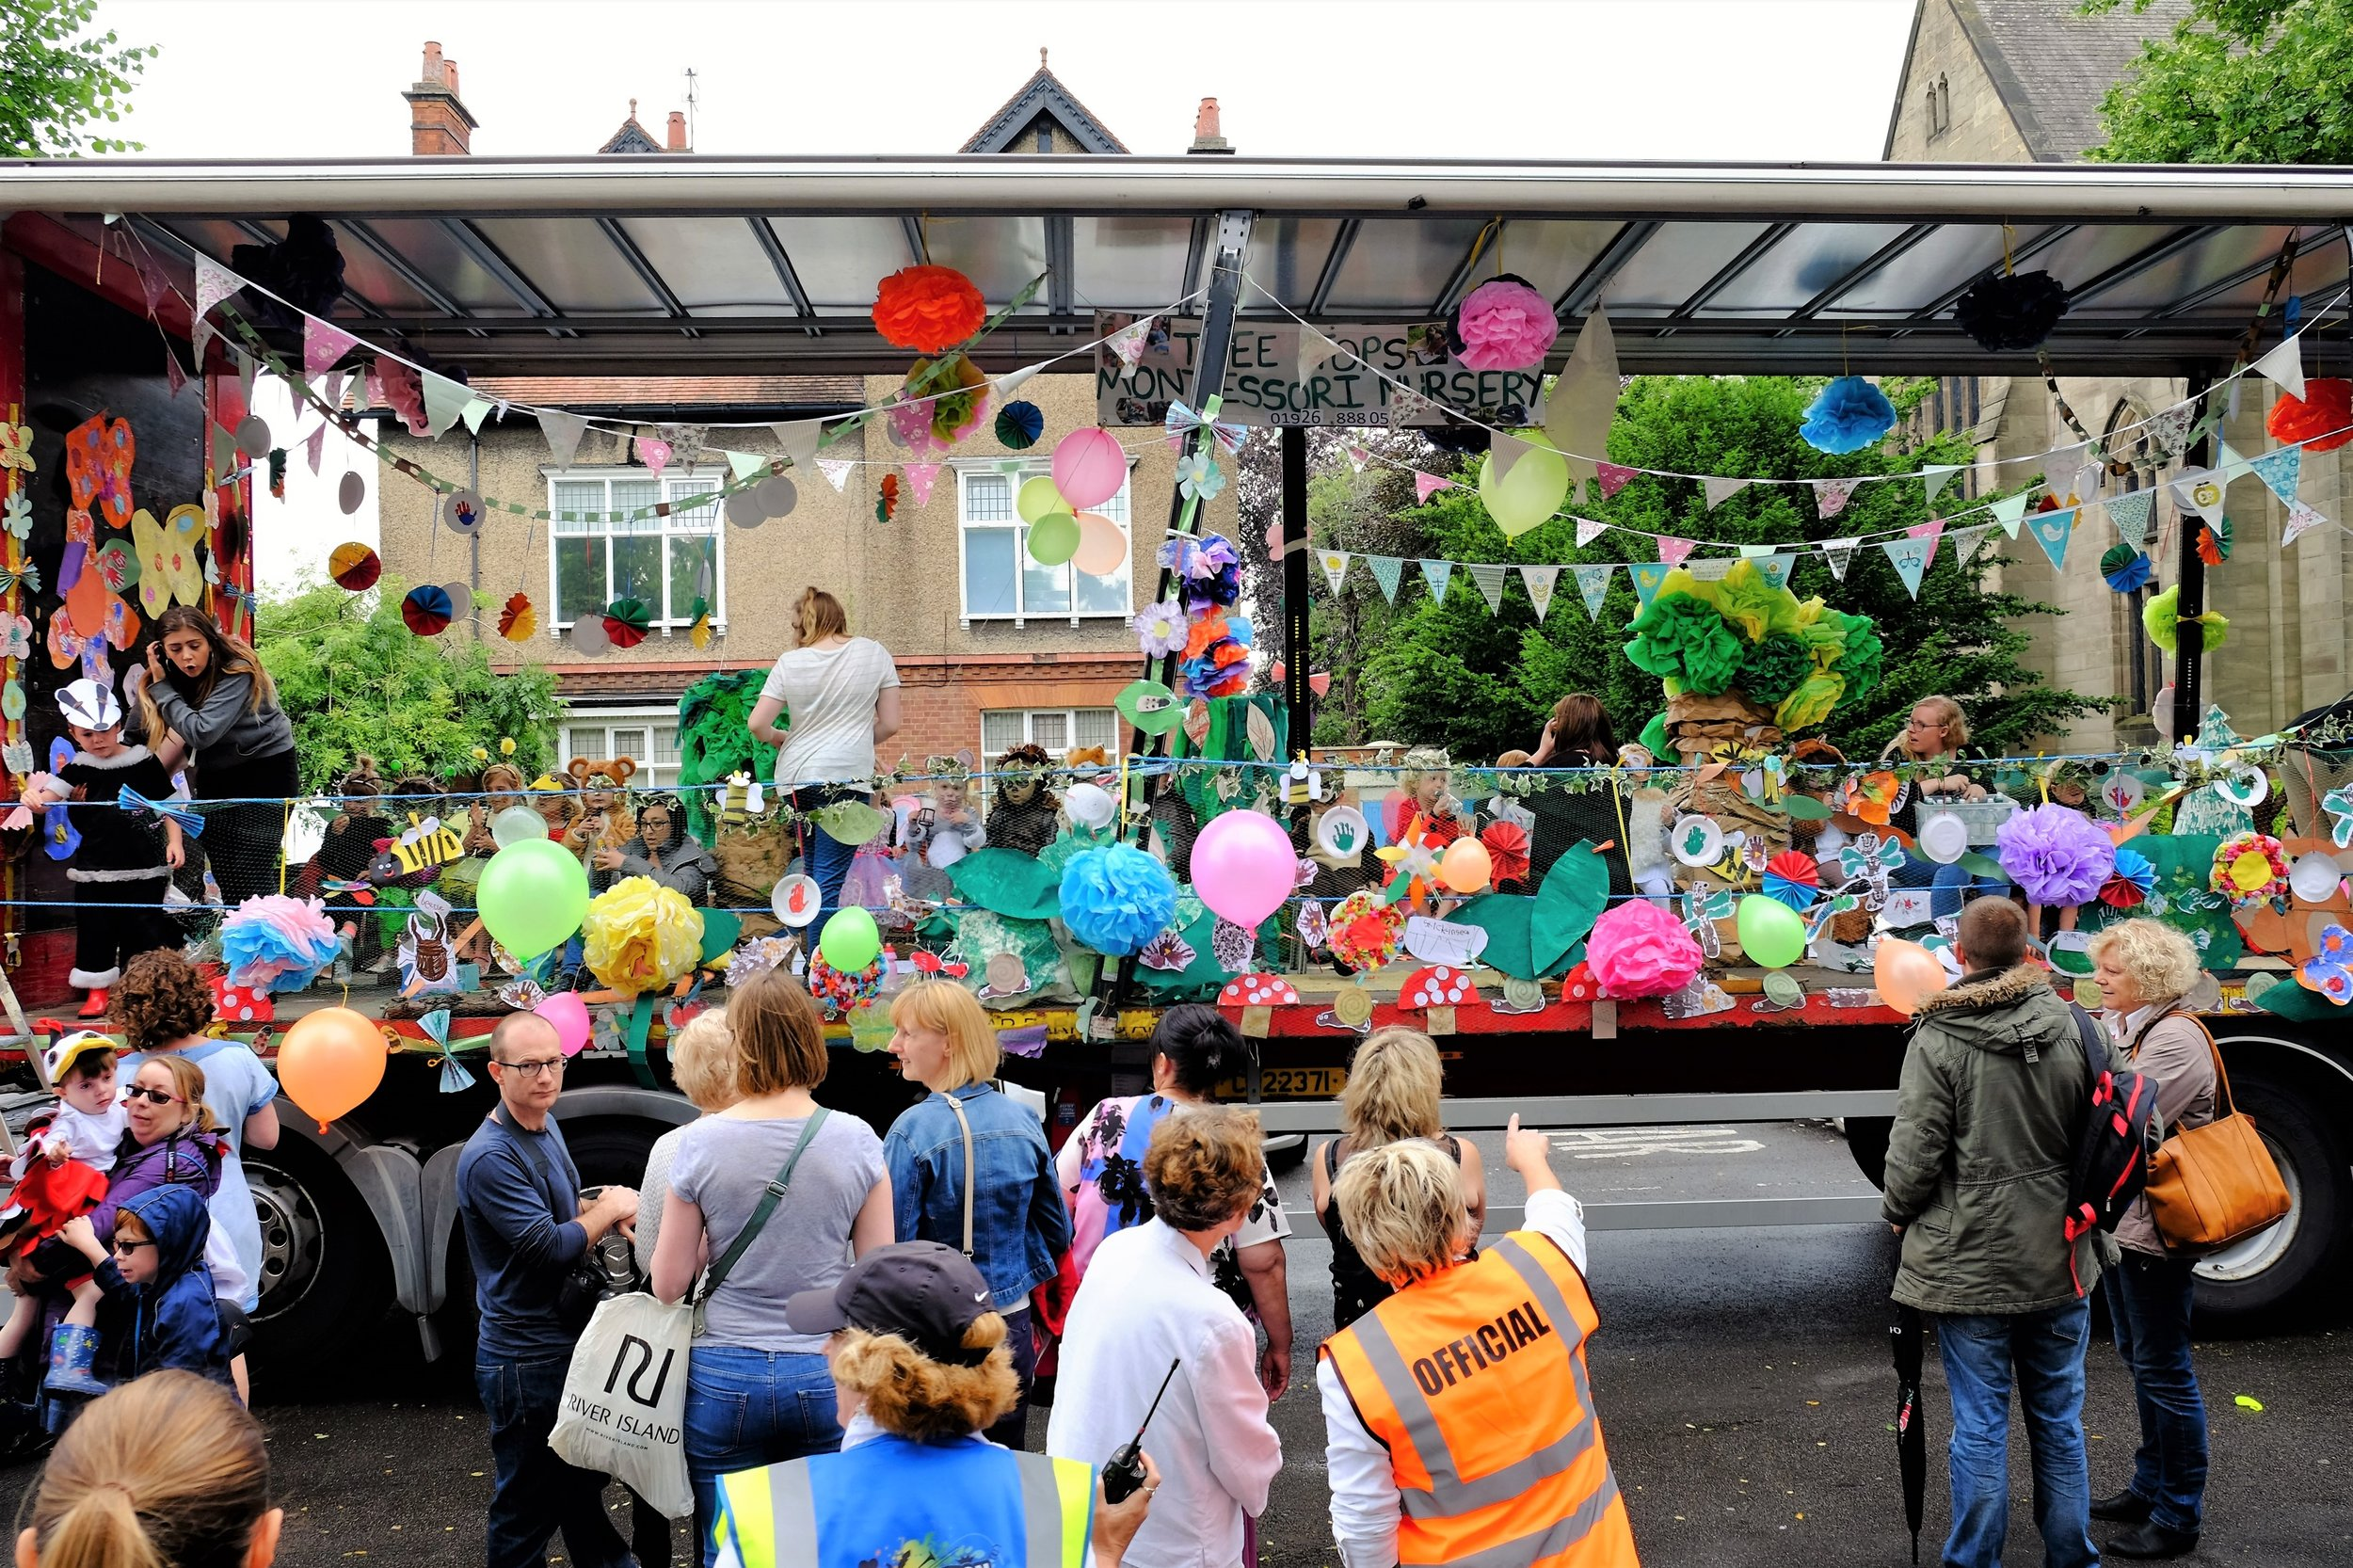 Leamington Spa Event photographer - leamington carnival photography warwickshire.JPG